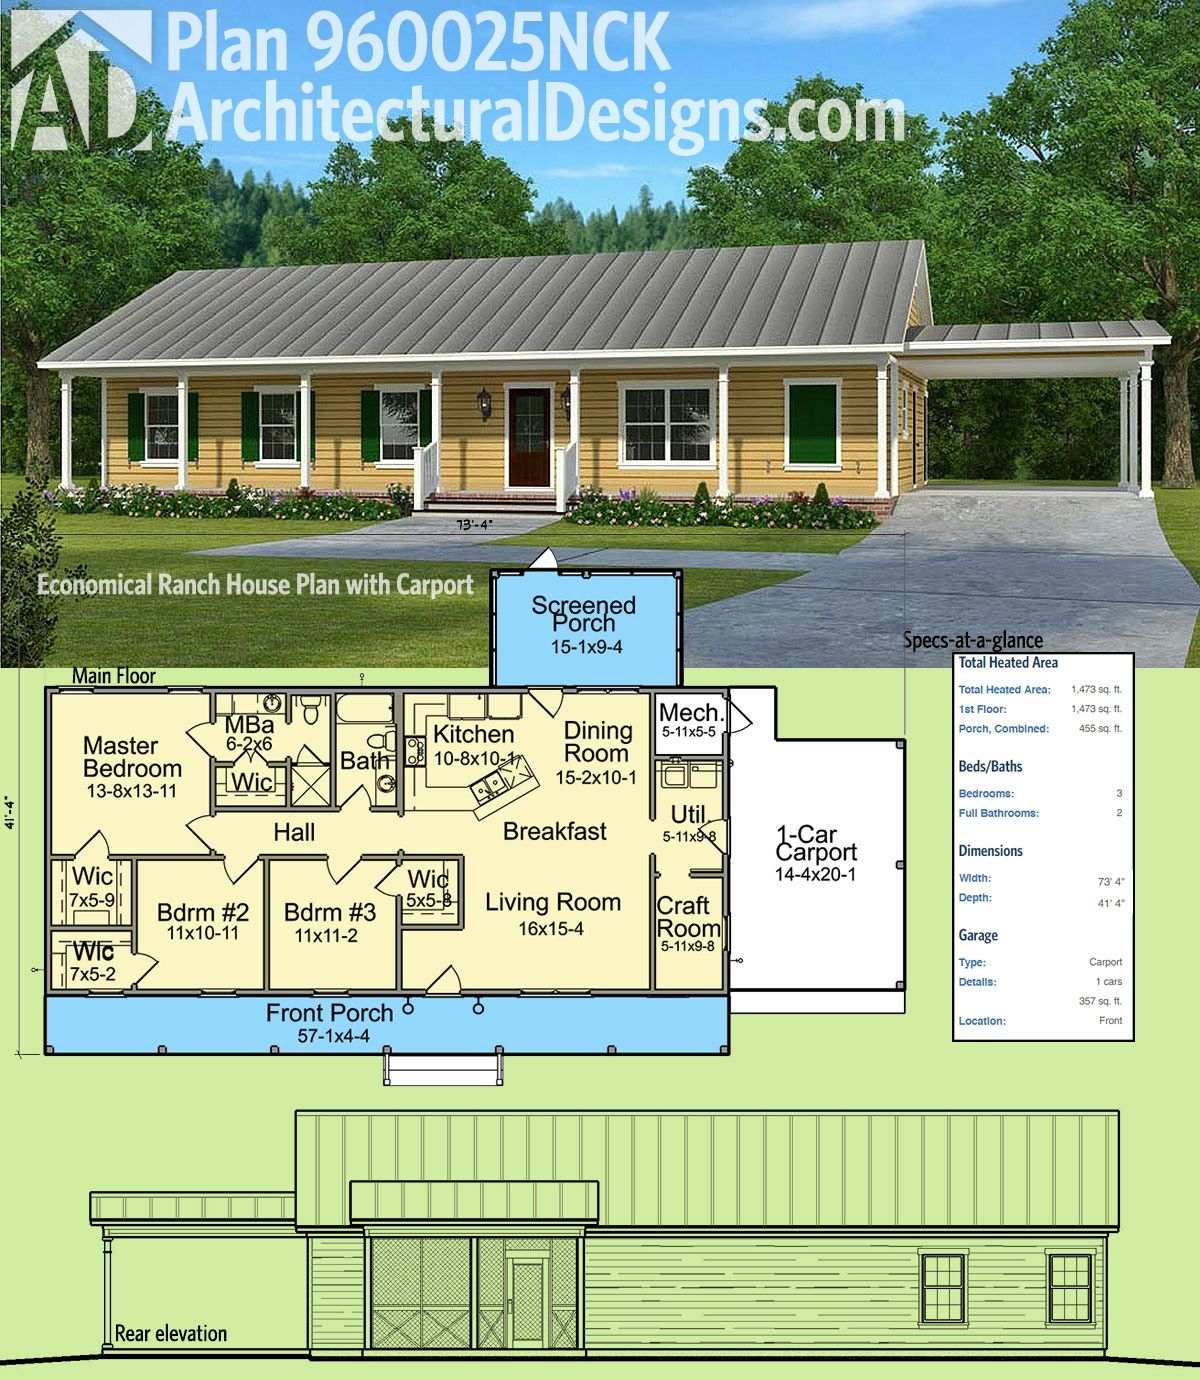 Plan 960025nck economical ranch house plan with carport for Simple house plans with garage